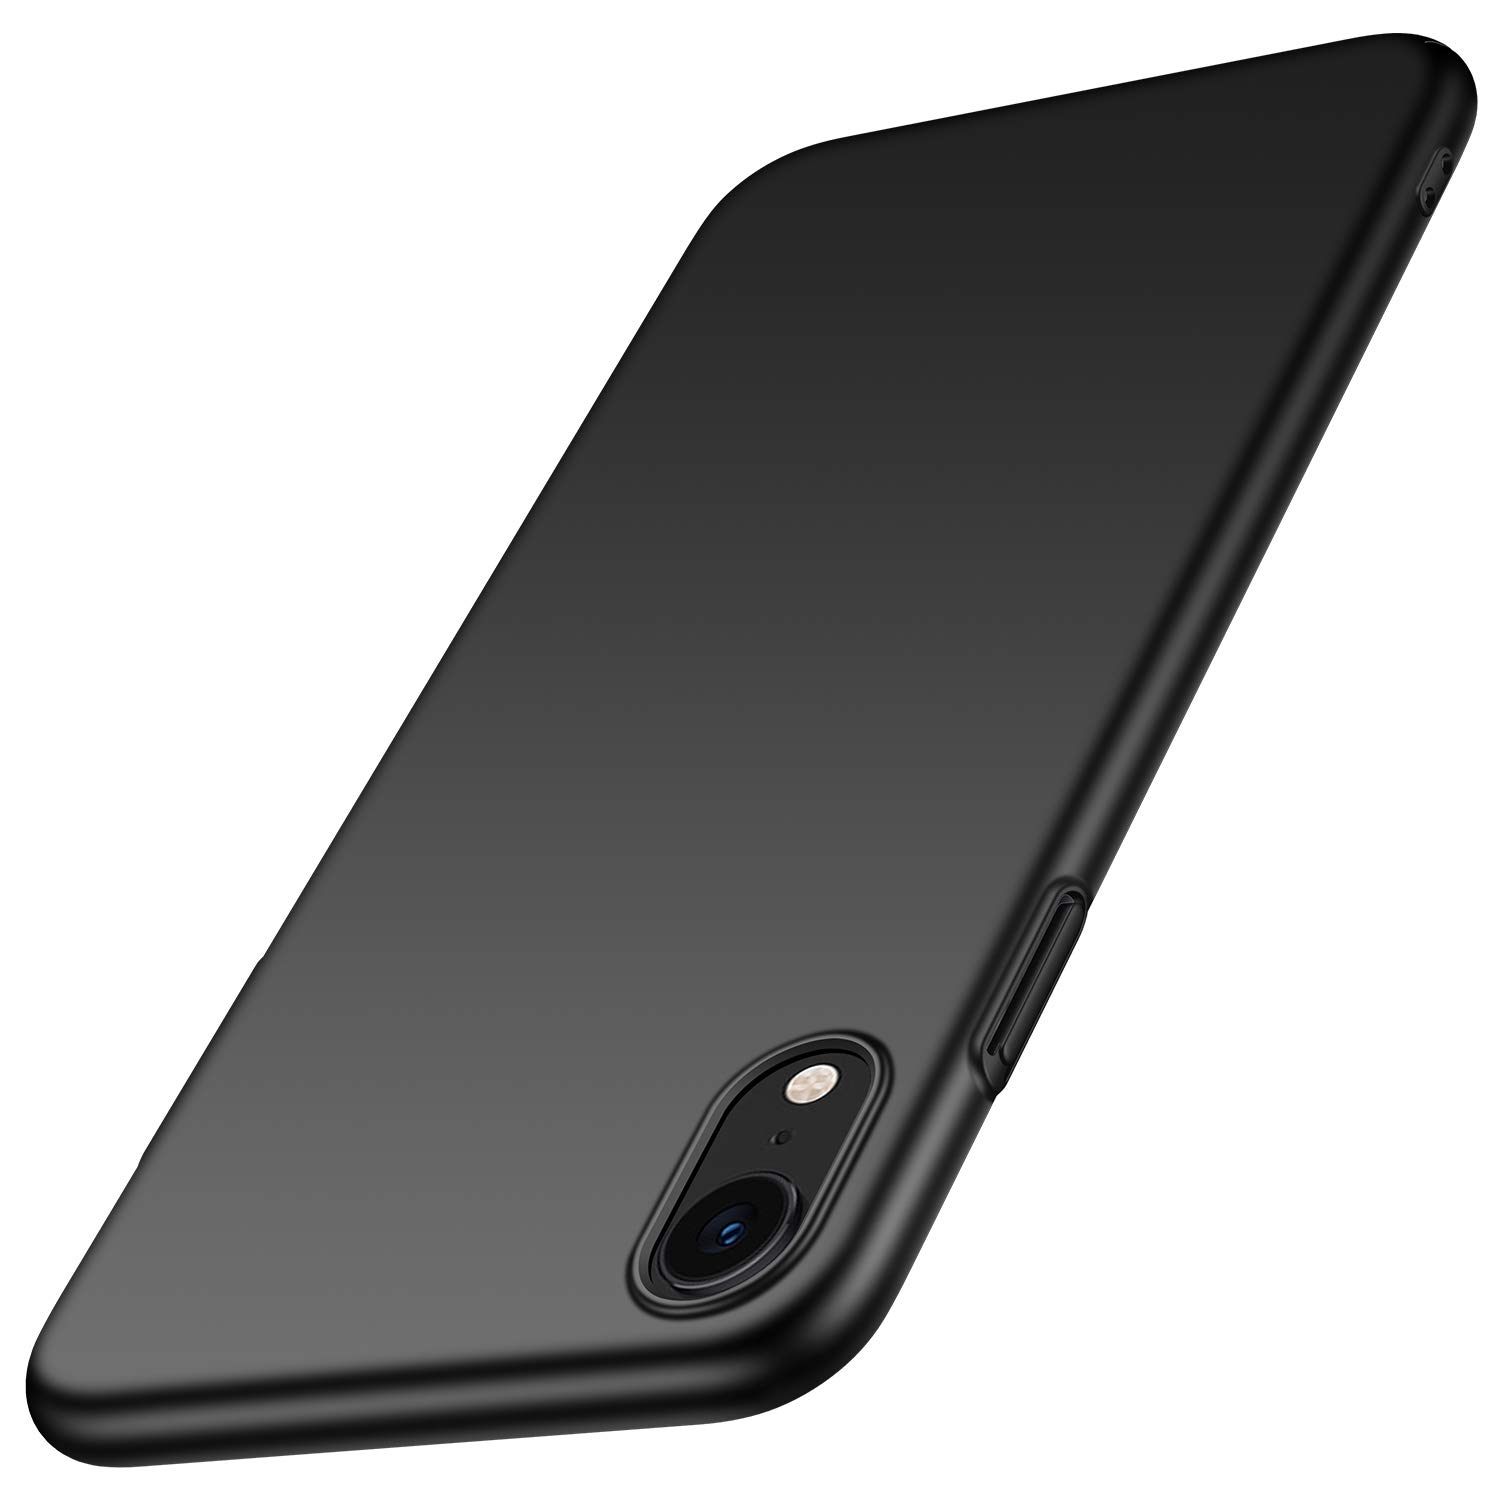 Arkour for iPhone XR Case, Minimalist Ultra Thin Slim Fit Cover with Smooth Matte Surface Hard Cases for iPhone XR 6.1 inch (Smooth Blue)